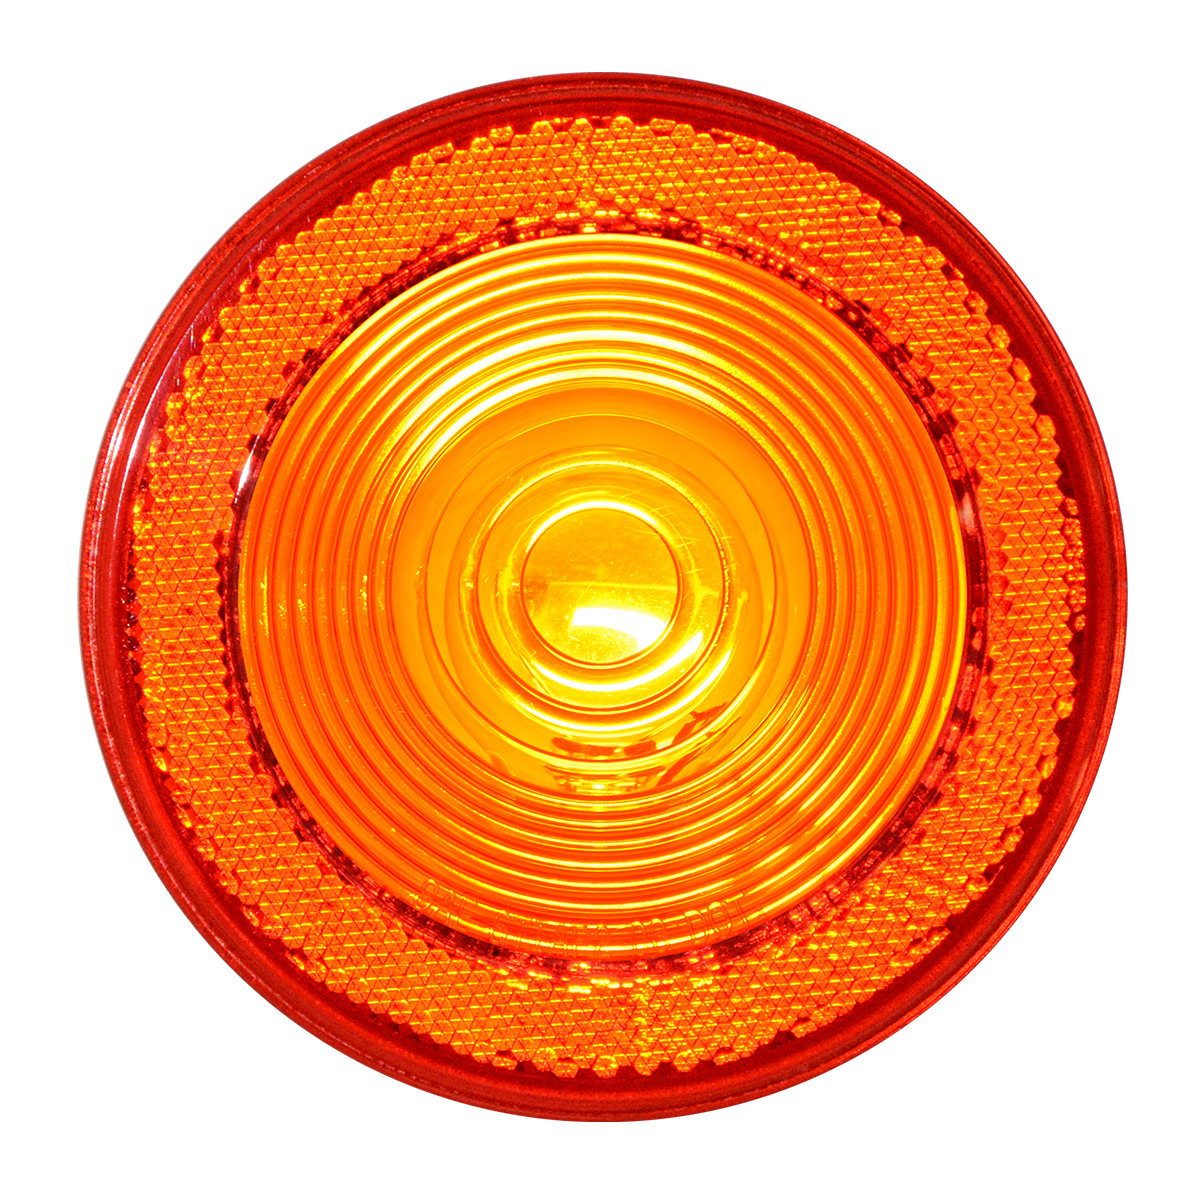 """#82761 4"""" Light with Reflector Lens - Light Only"""